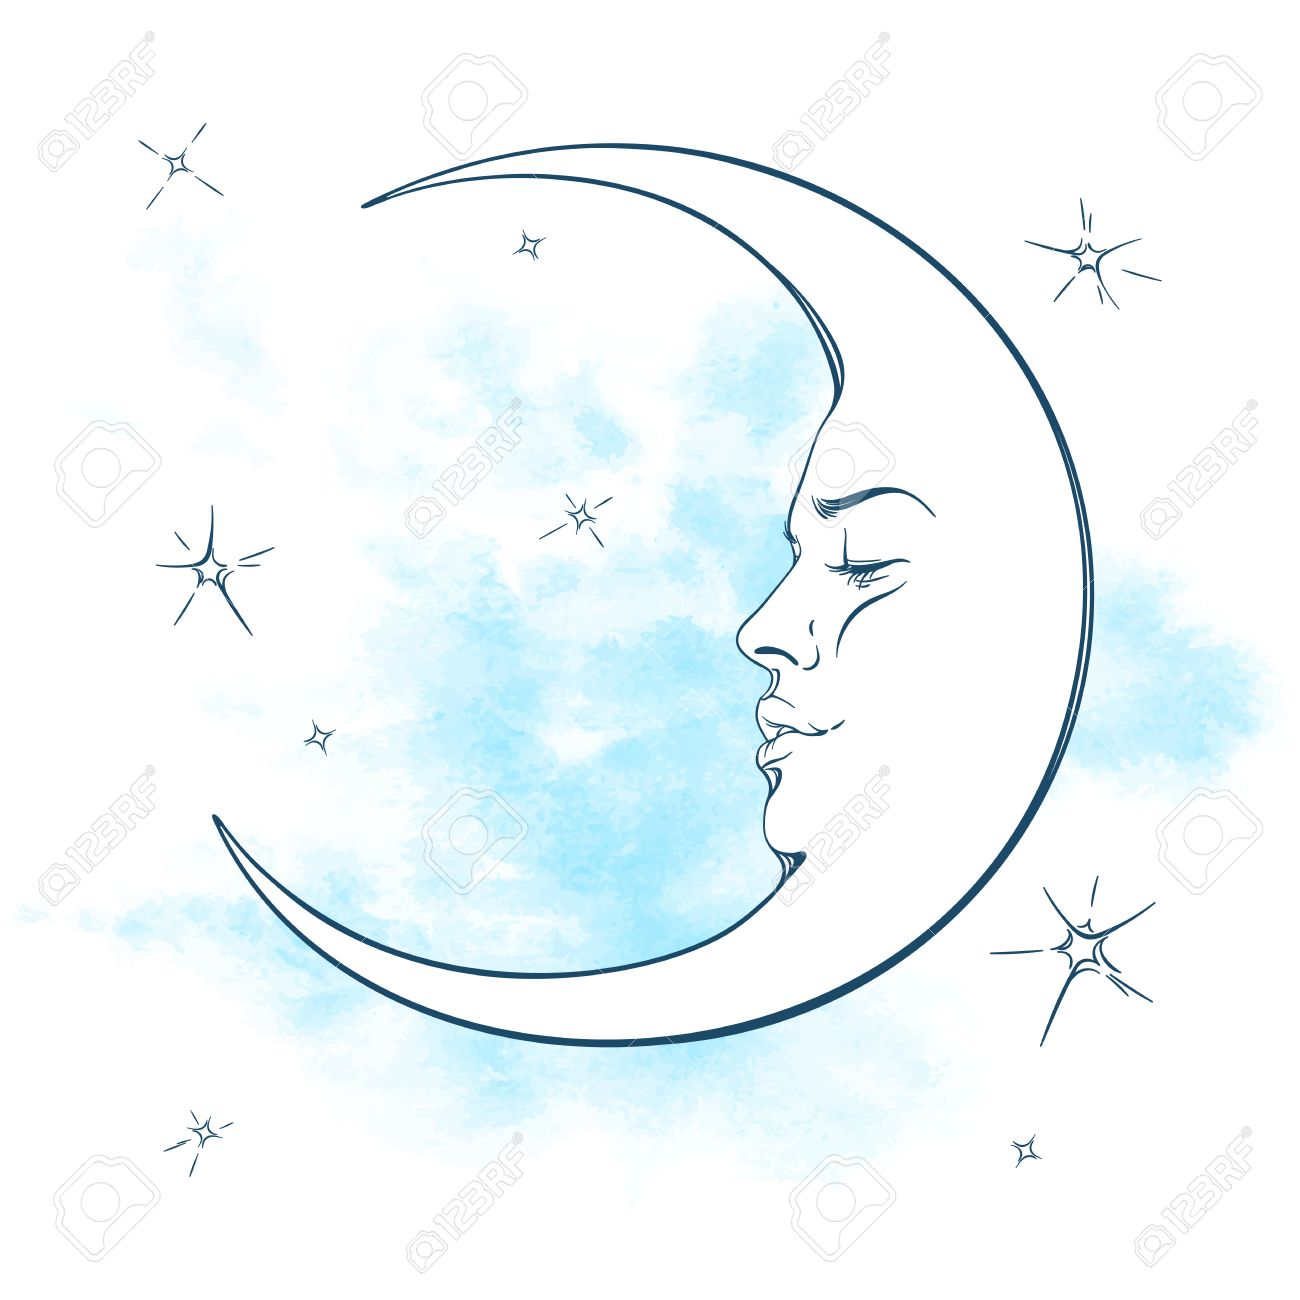 Blue crescent moon and stars vector illustration. Hand drawn tattoo design, astrology, alchemy, magic symbol isolated over abstract watercolor background - 61351084